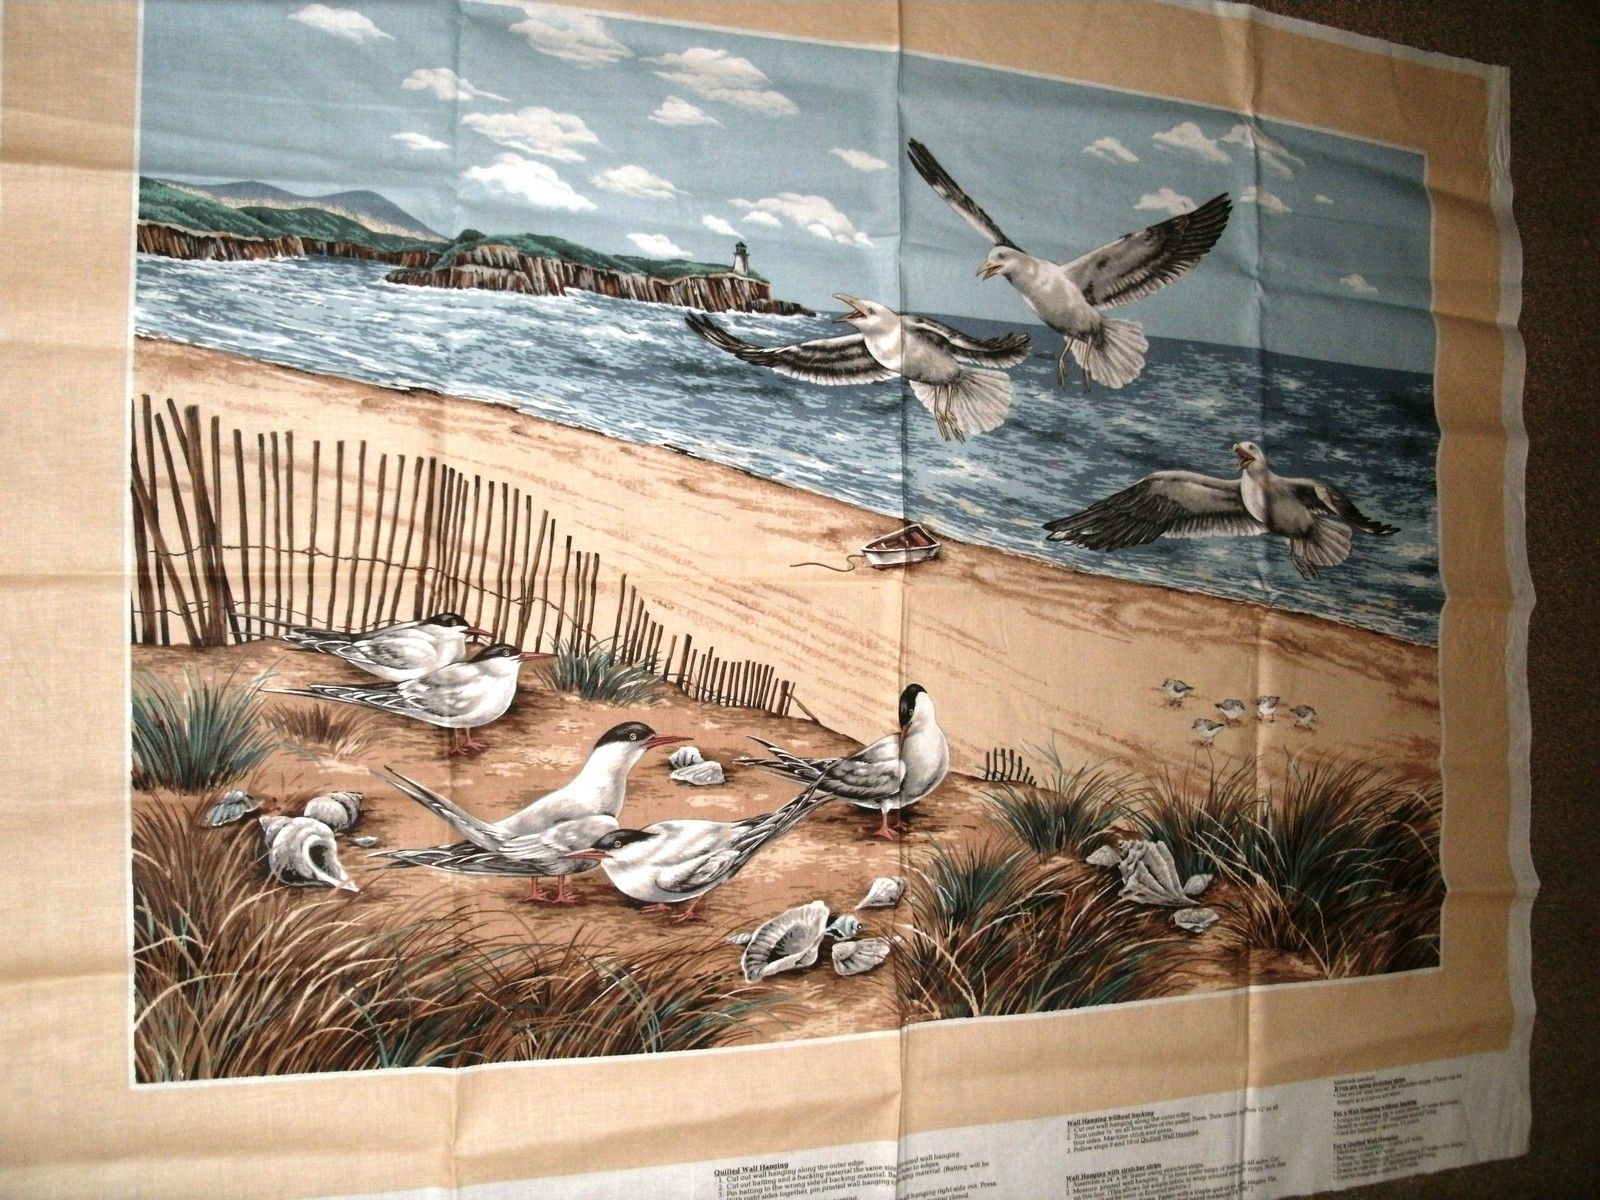 White beach print home decor fabric decorative seashell bty ebay - Shorebirds Collection Panel Beach Scene With Seagulls Size 32 X 44 Cranston Ebay